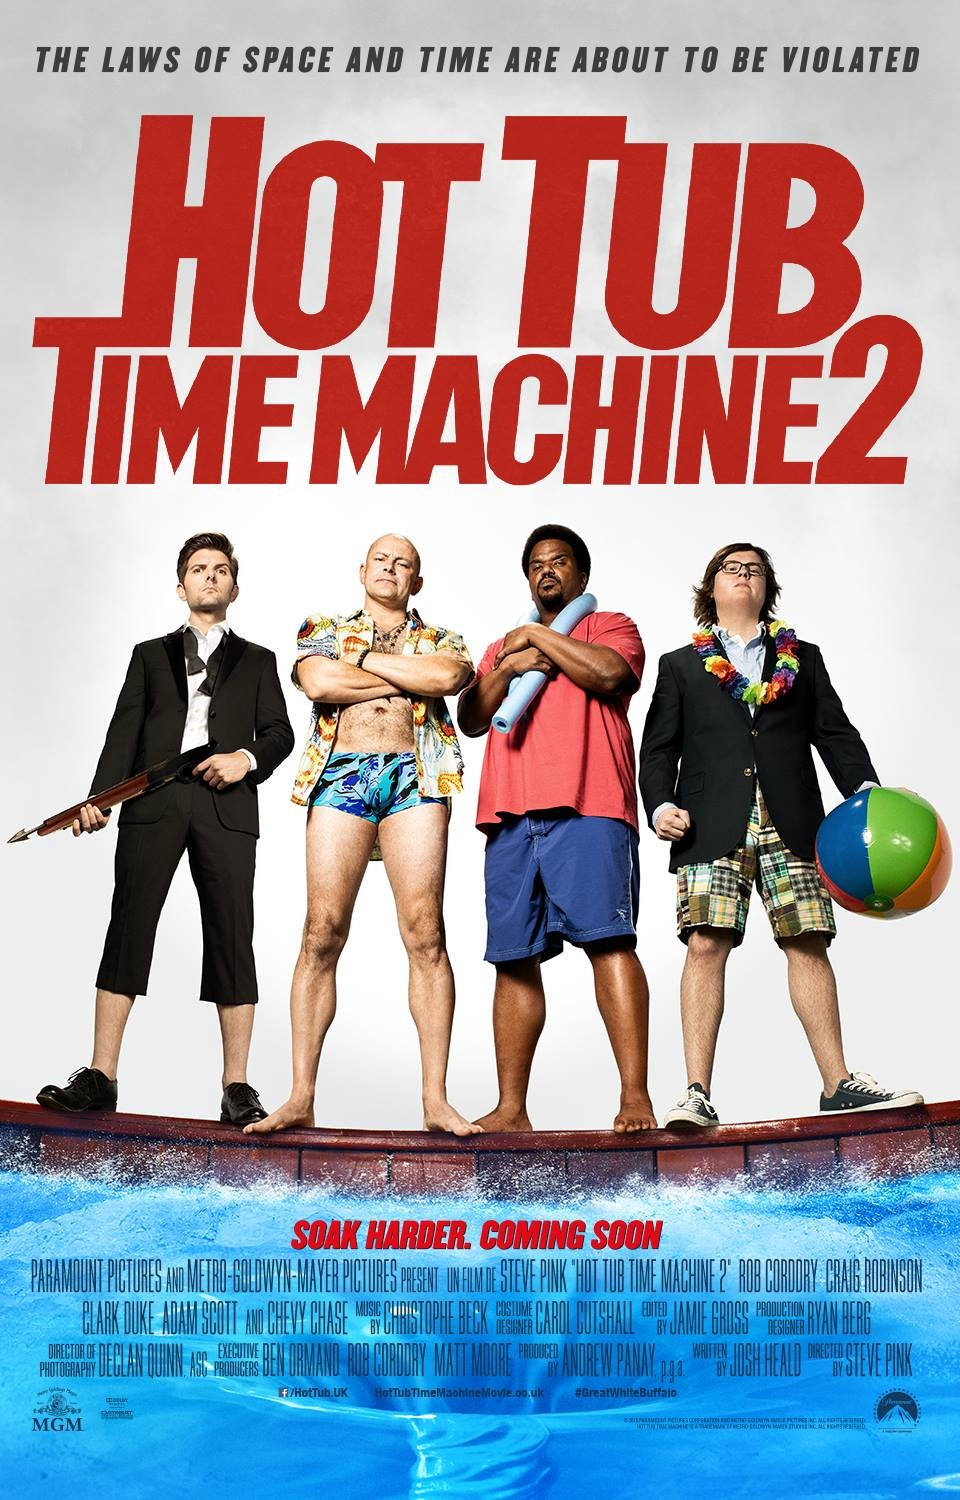 Hot tub time machine 2 tráiler.